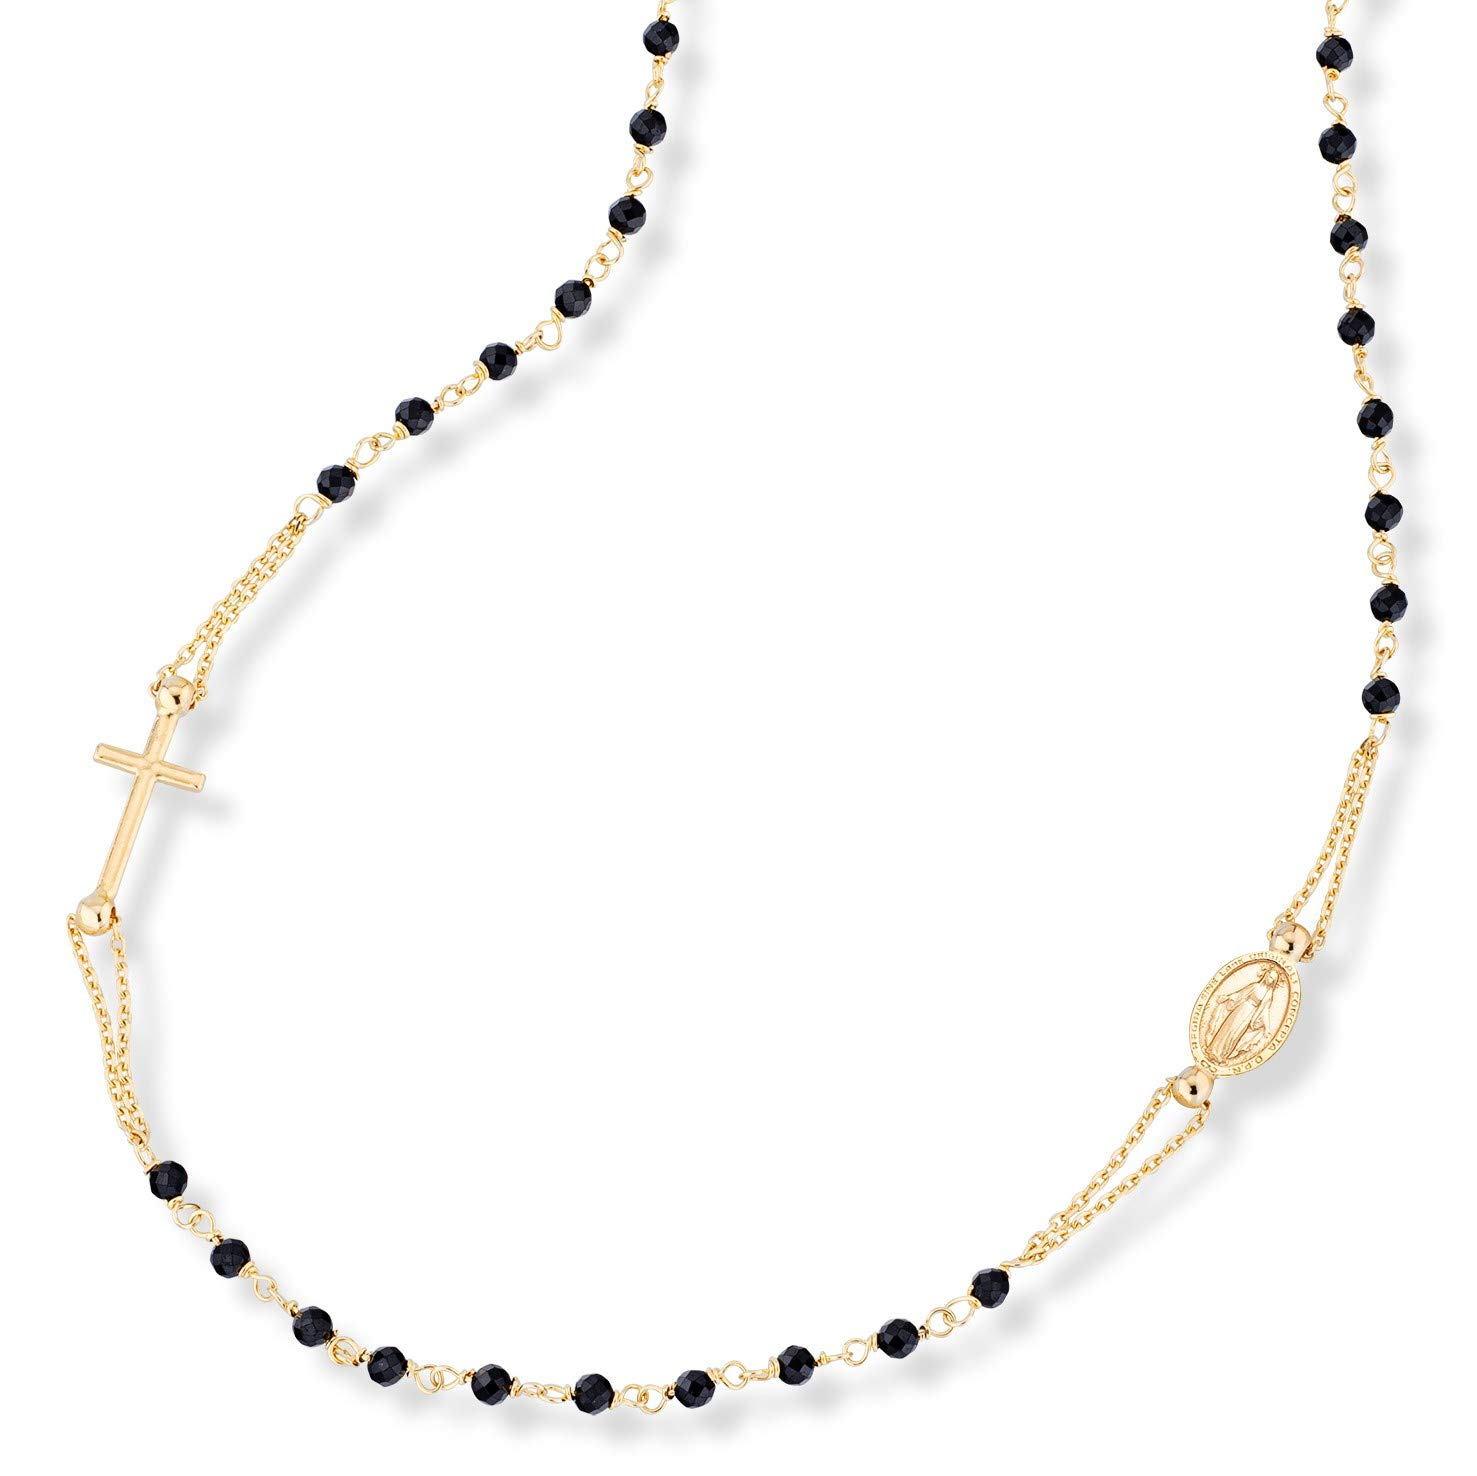 MiaBella 18K Gold Over Sterling Silver Italian Handmade Black Spinel Rosary Beads Sideways Cross Necklace for Women Teen Girls, Link Chain 18, 20 Inch 925 Made in Italy (18) by MiaBella